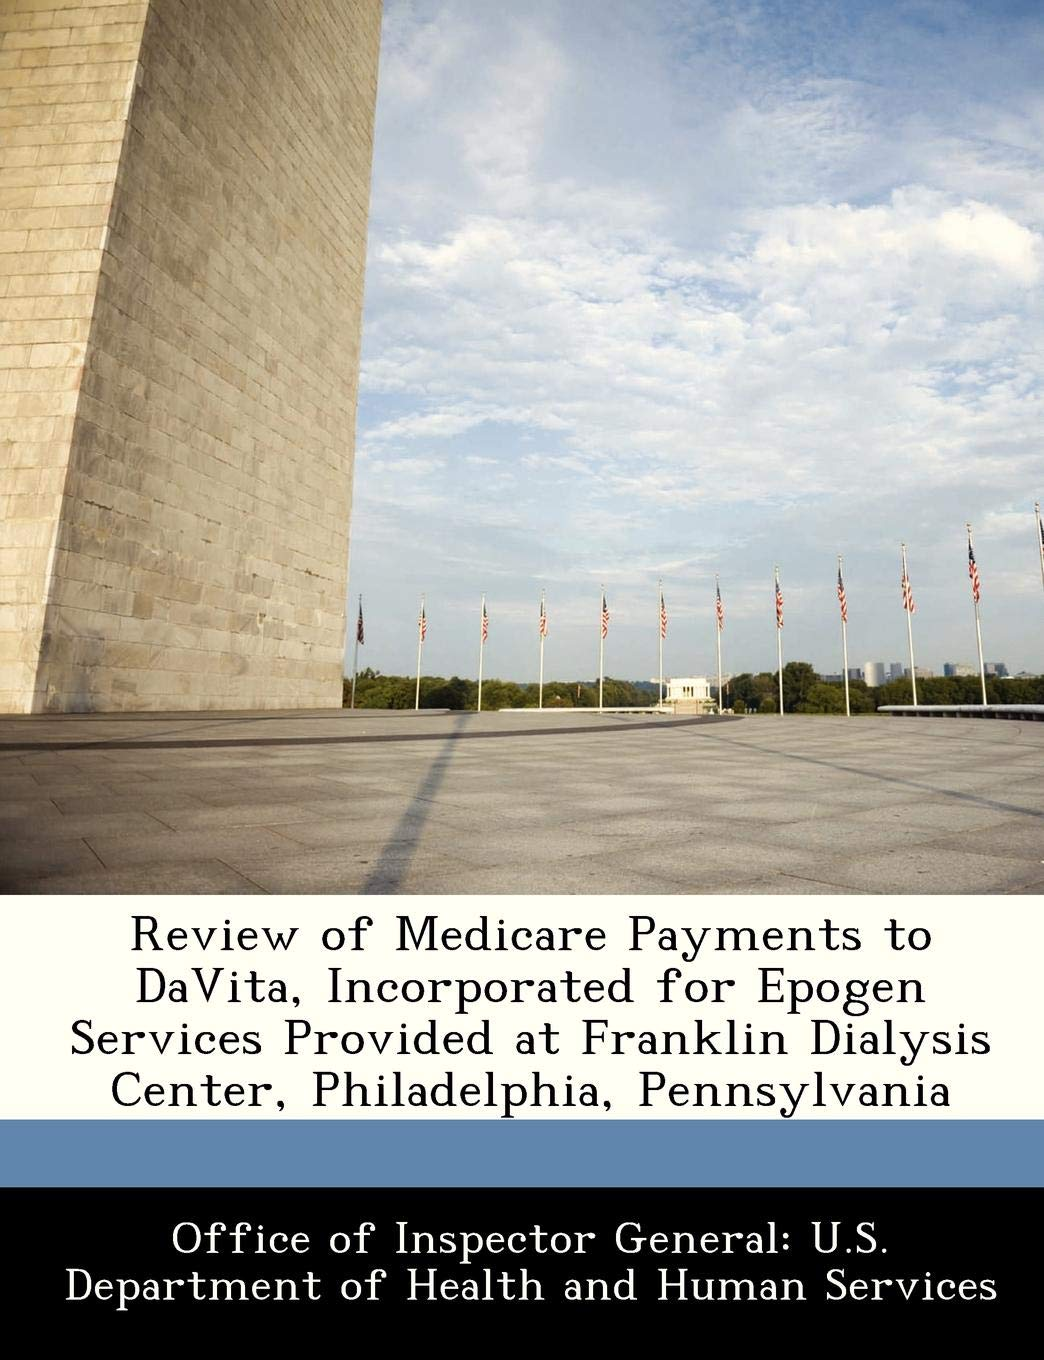 Review of Medicare Payments to DaVita, Incorporated for